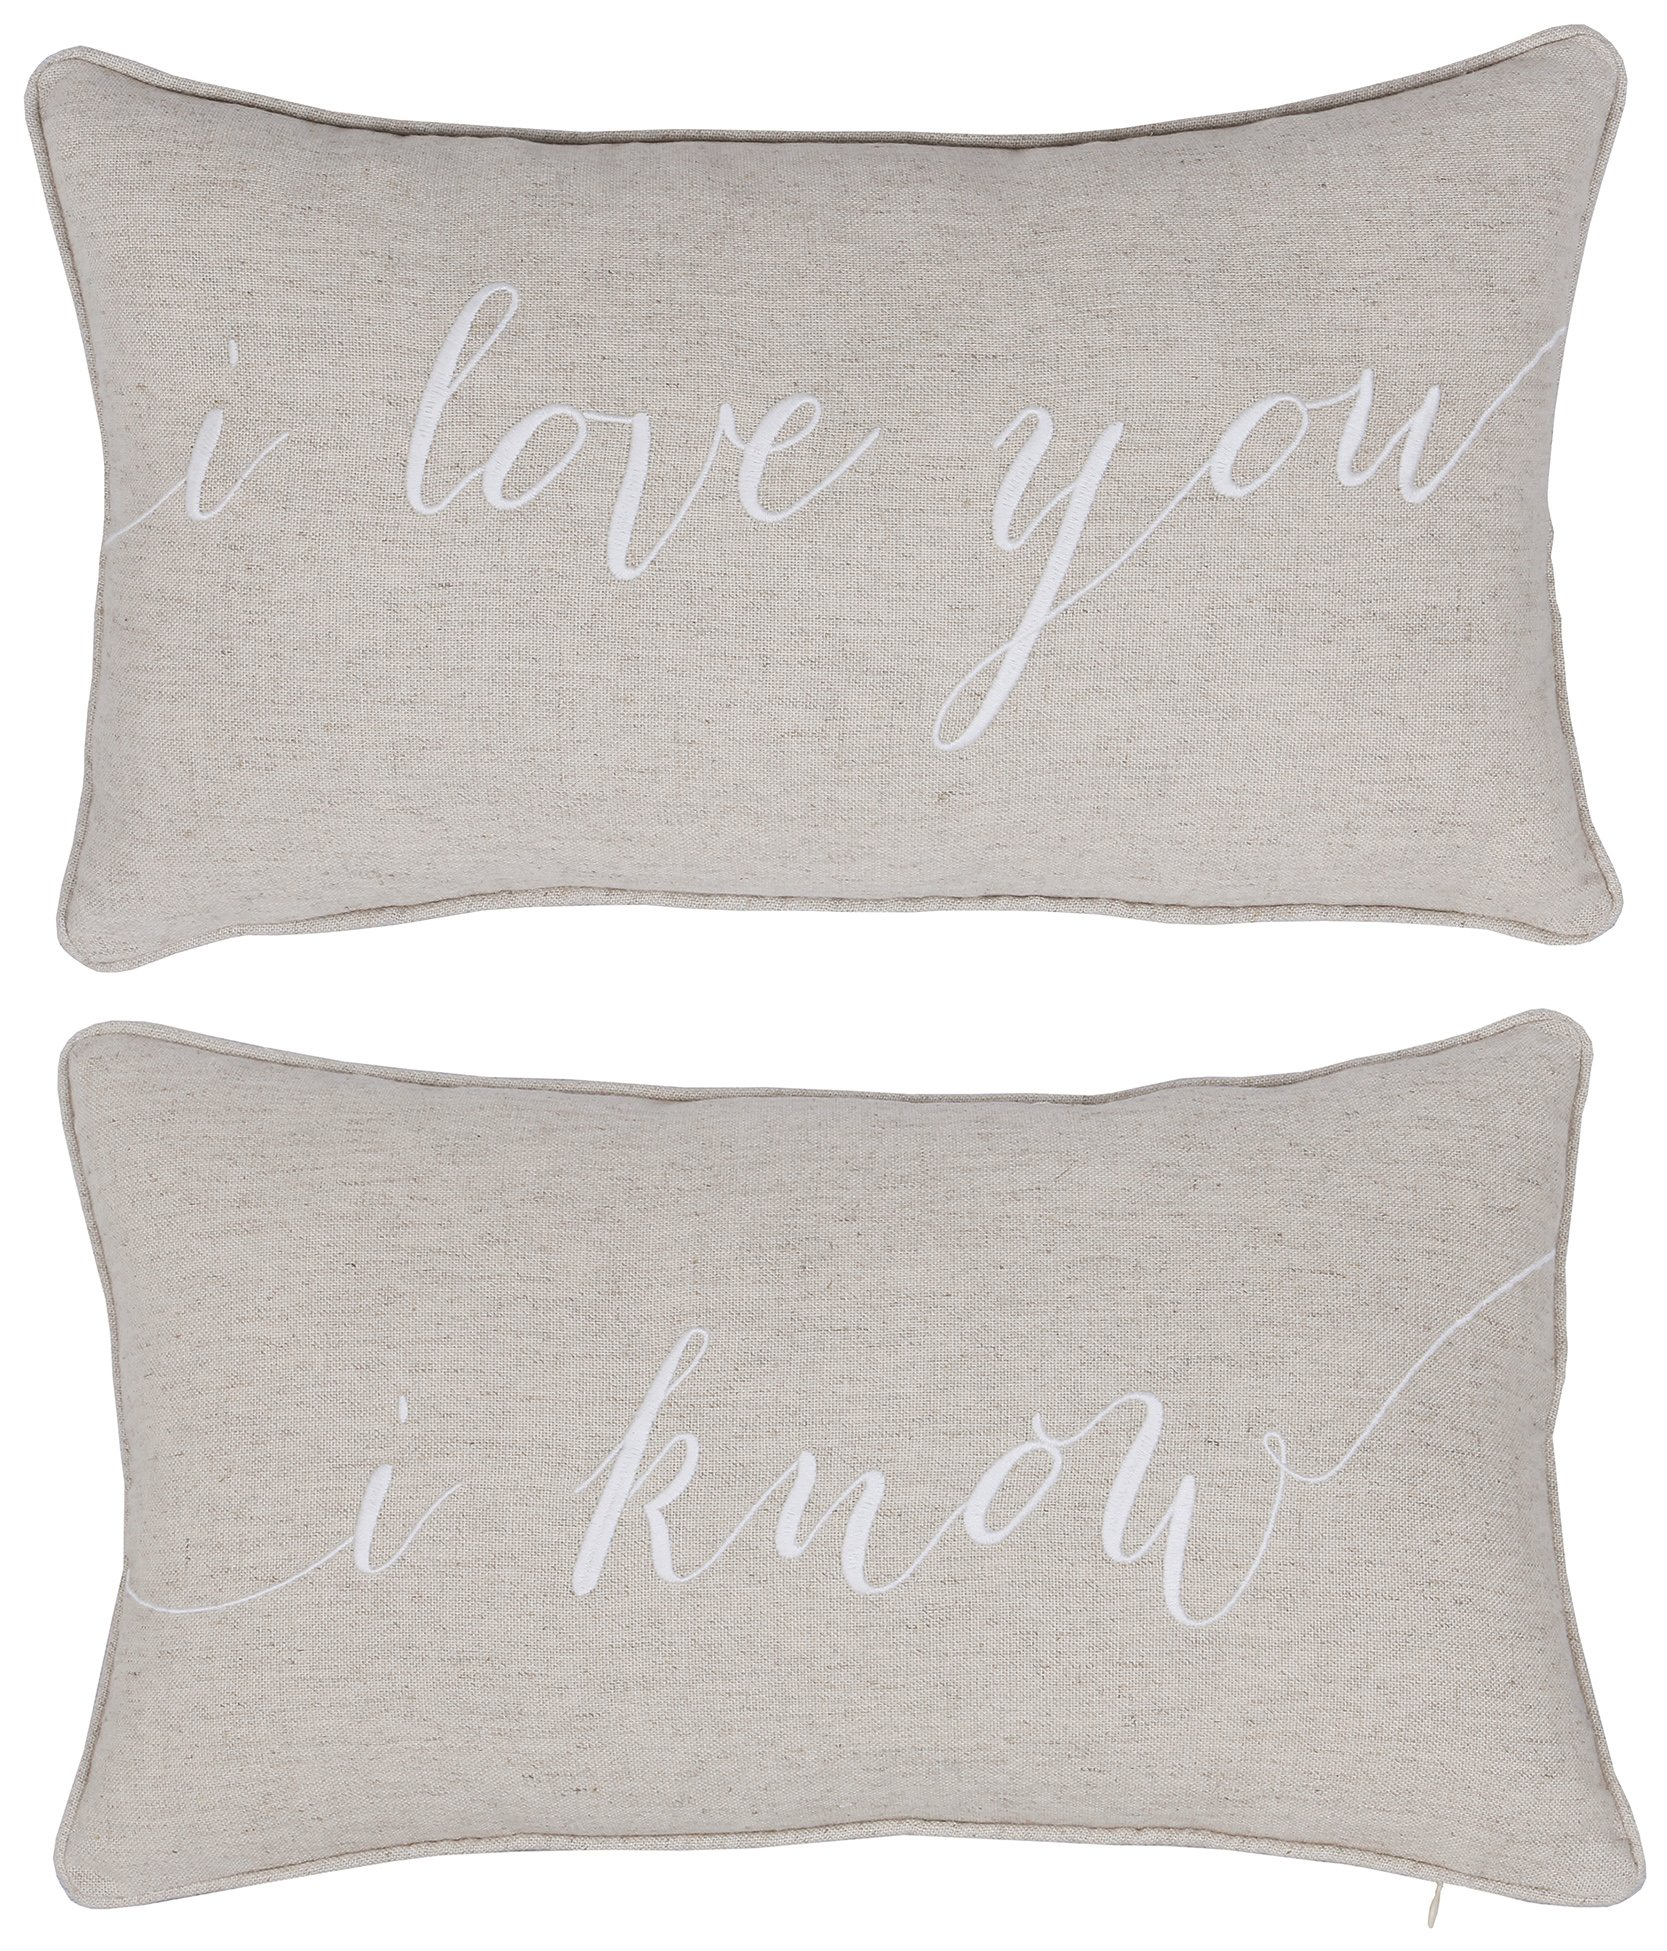 DecorHouzz I Love u I know Set of 2 Pcs Embroidered Pillow Case Pillow Cover Decorative Pillow Cushion Cover 12''x20'' Couple Wedding Anniversary (Linen)